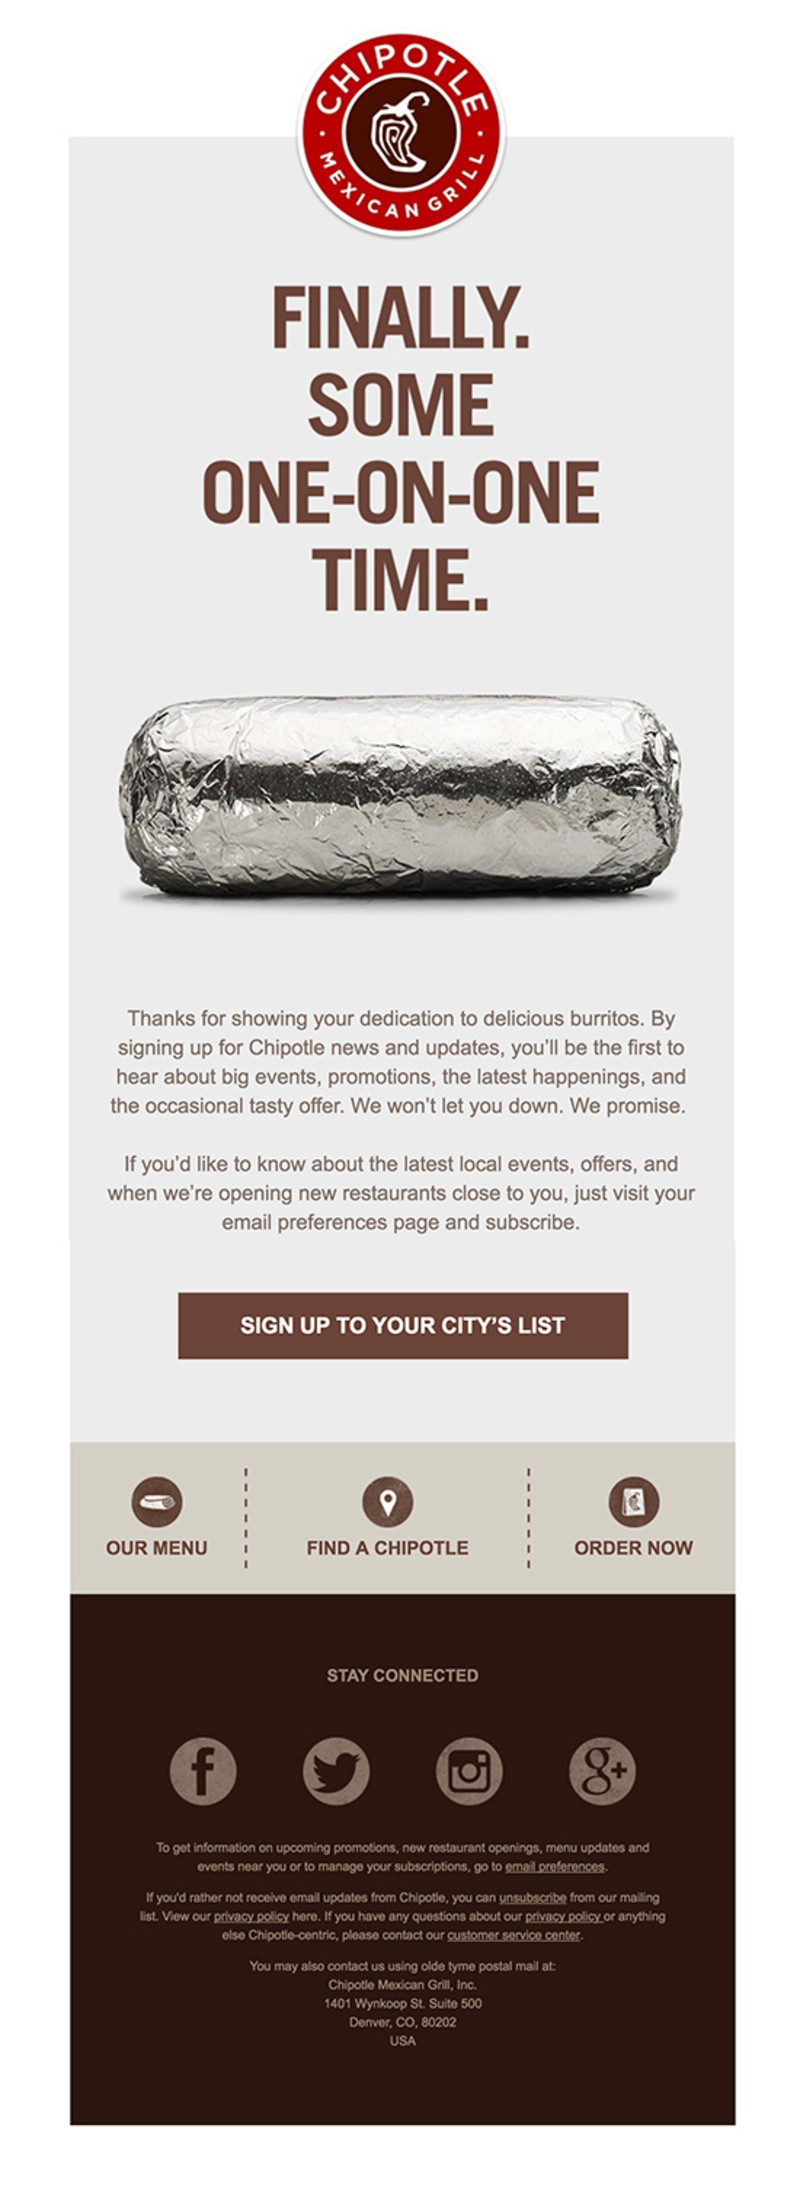 Example Email From Chipotle With a Picture of a Huge Burrito Wrapped